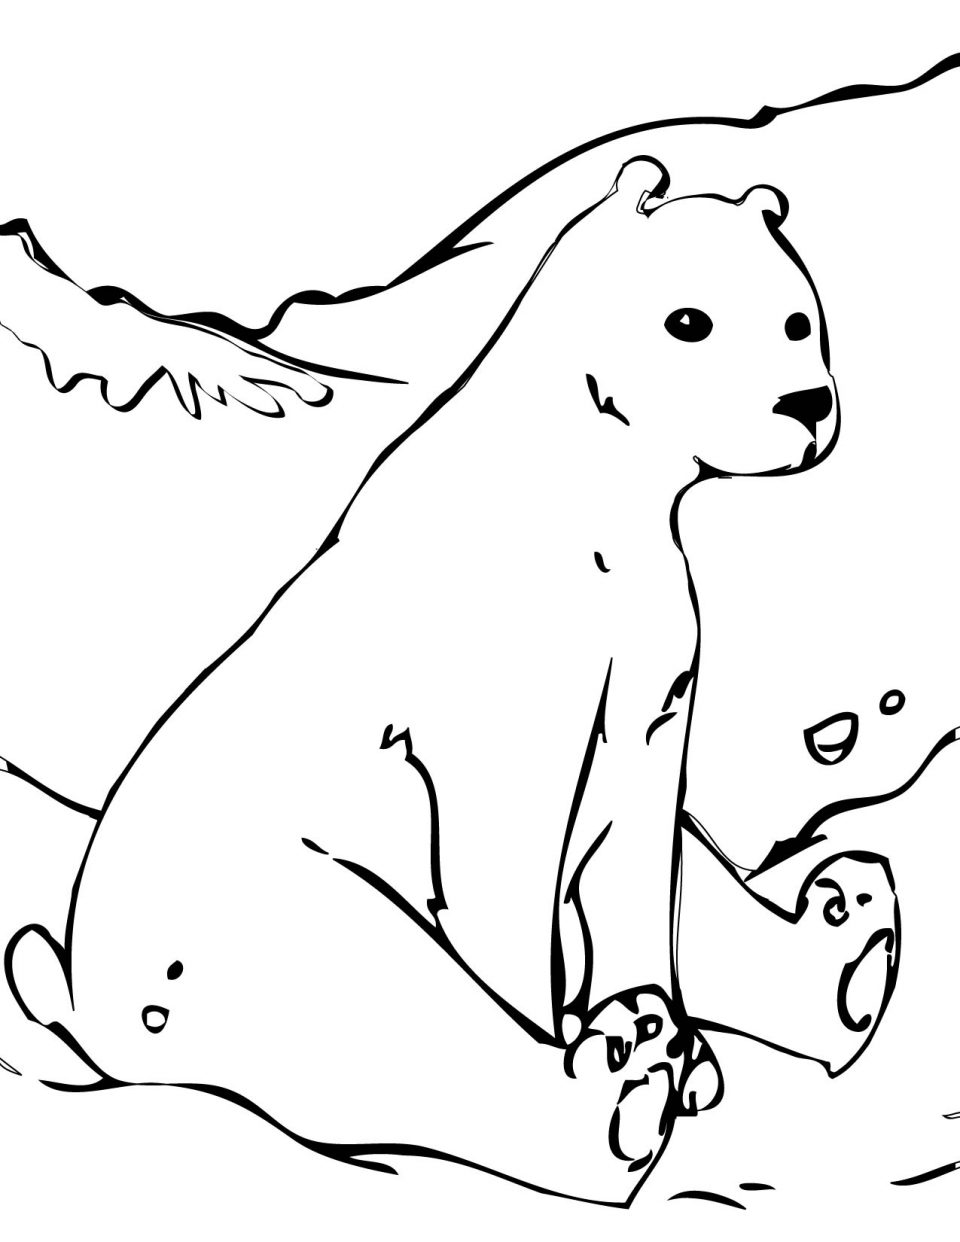 960x1242 Polar Bear Cub Coloring Pages Cute Baby Little For Toddlers